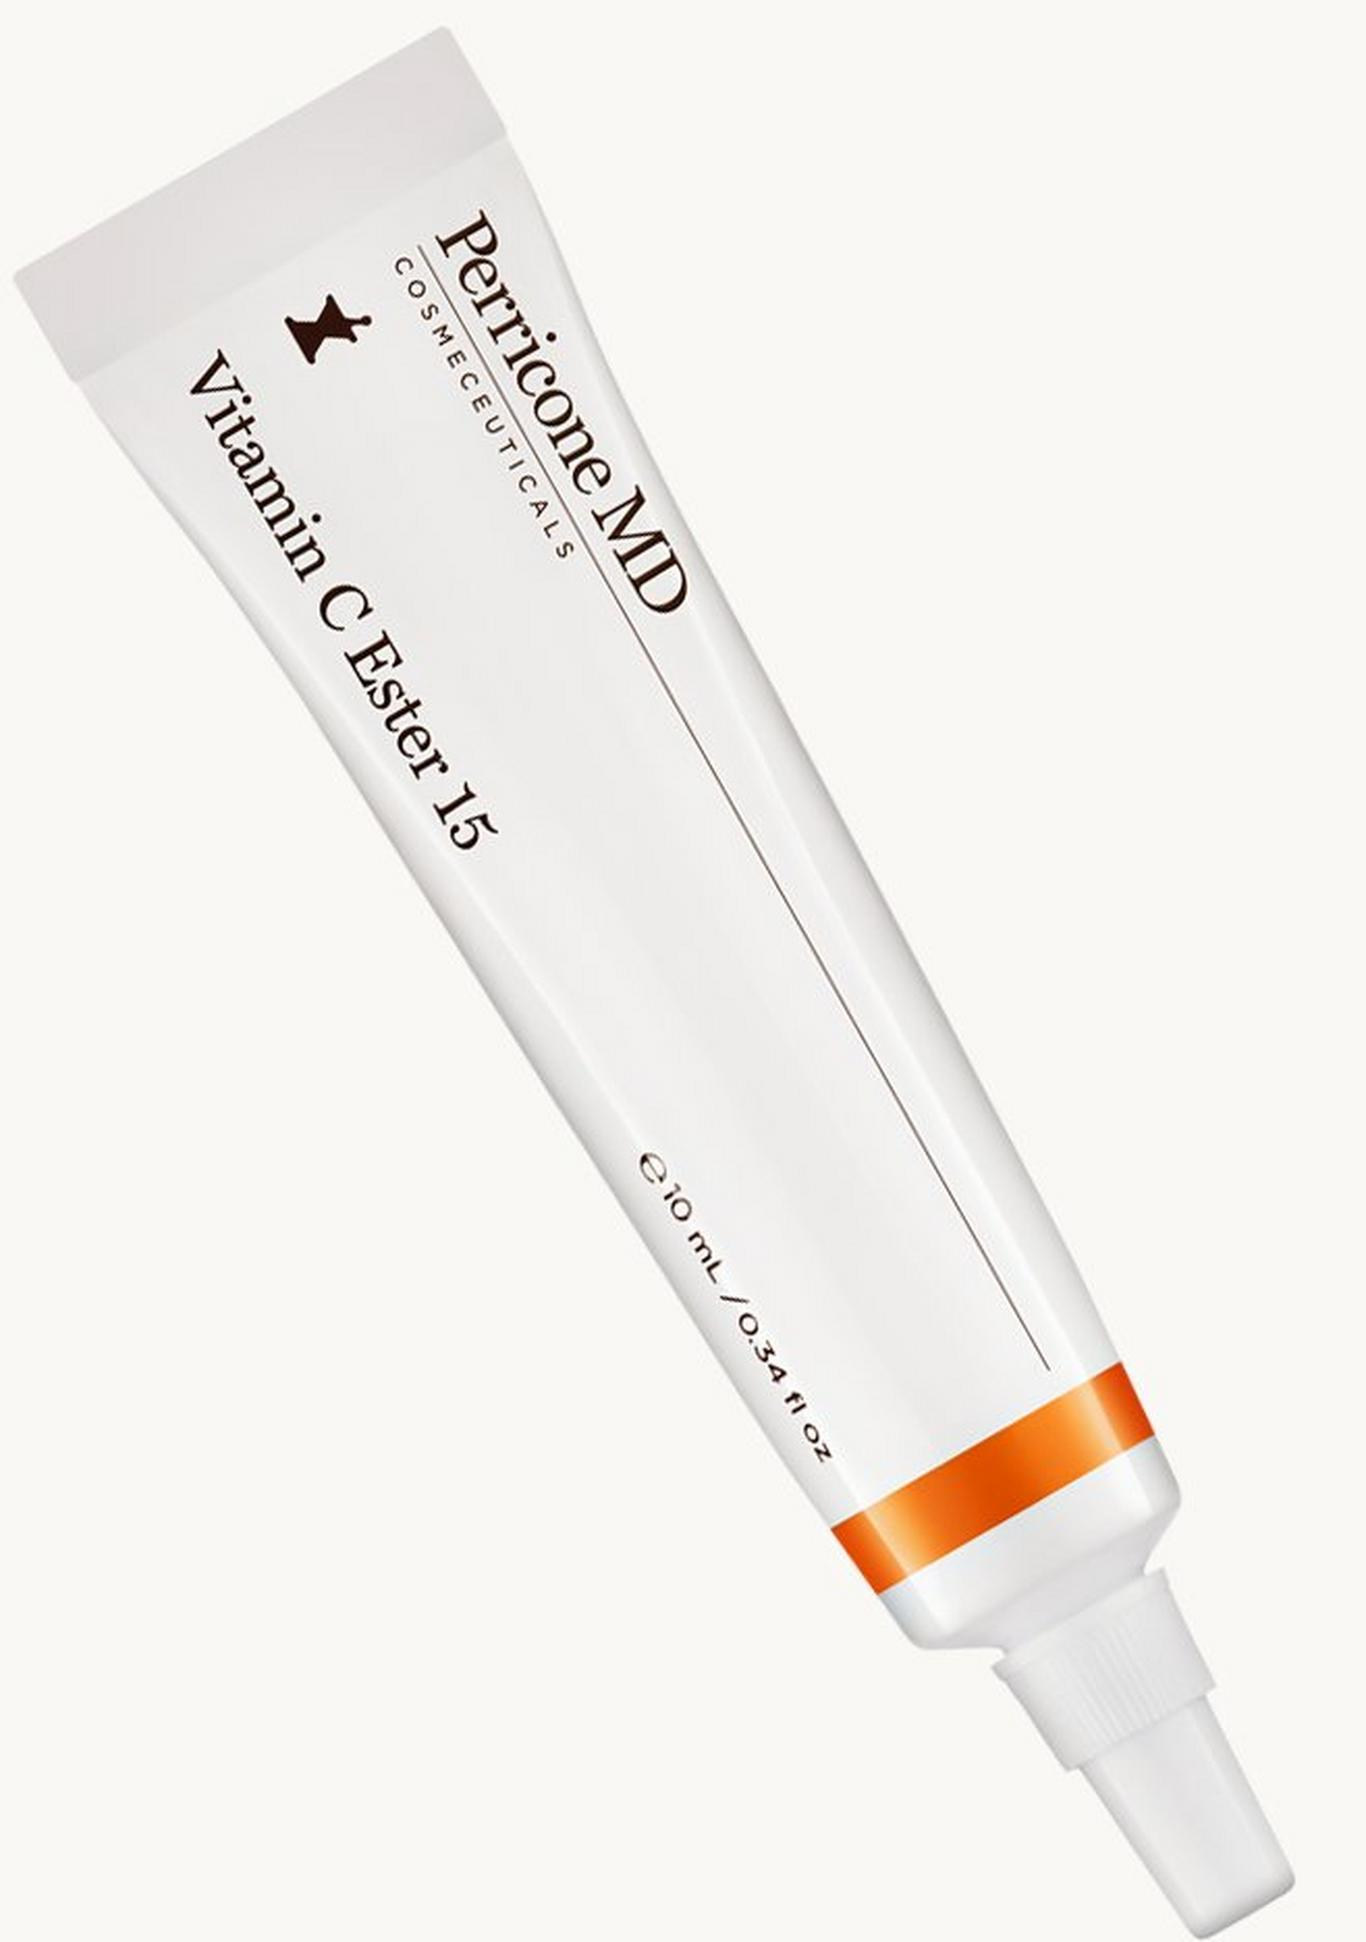 Vitamin C Ester helps boost collagen production, smooth skin texture and brightens its appearance.